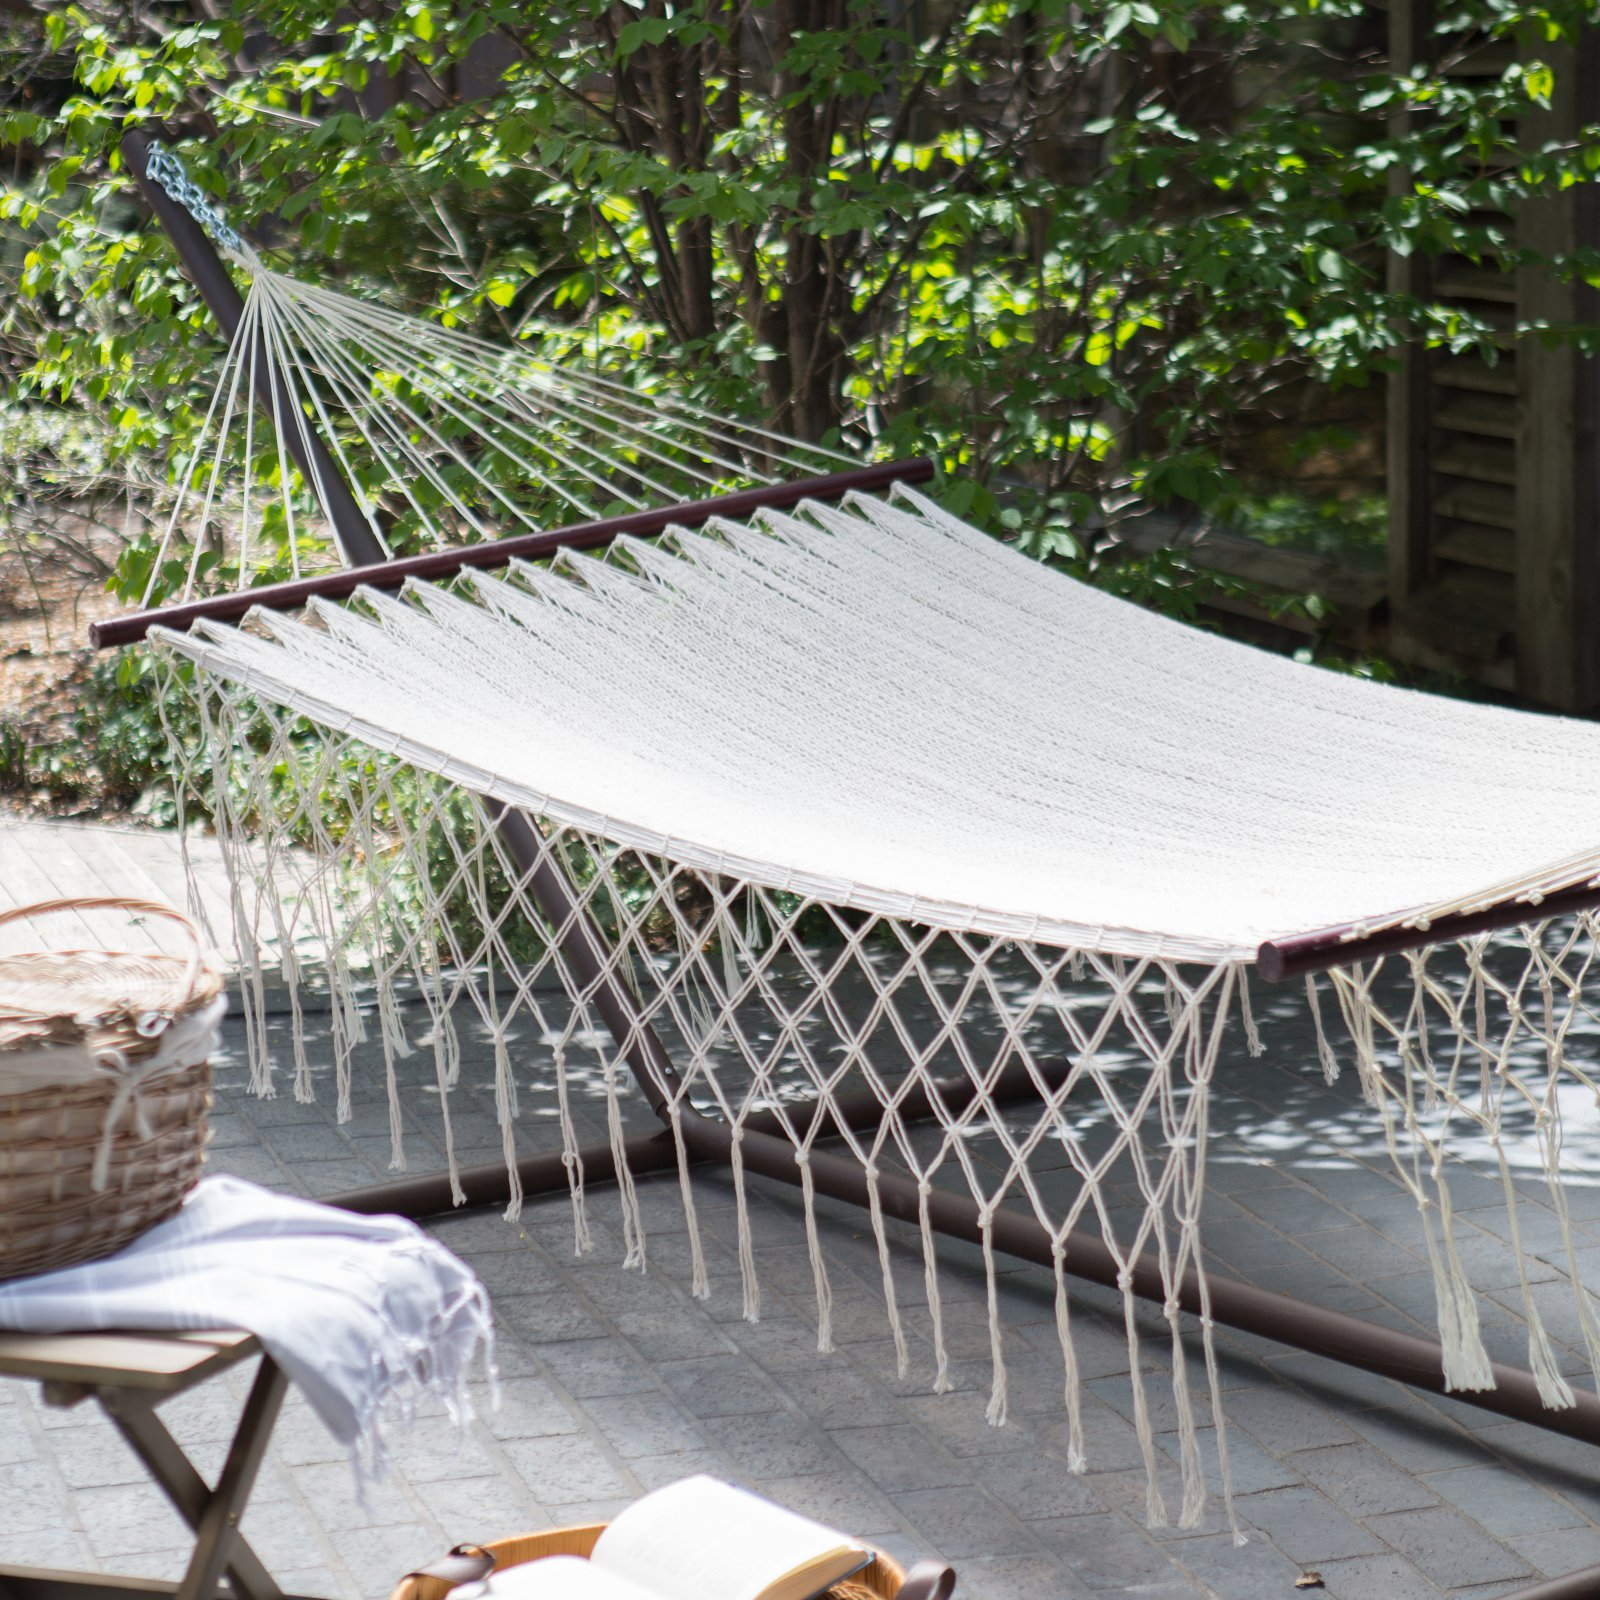 Coral Coast XXL Hand Woven Mayan Solid Thick String Double Hammock with Fringe and Spreader Bar